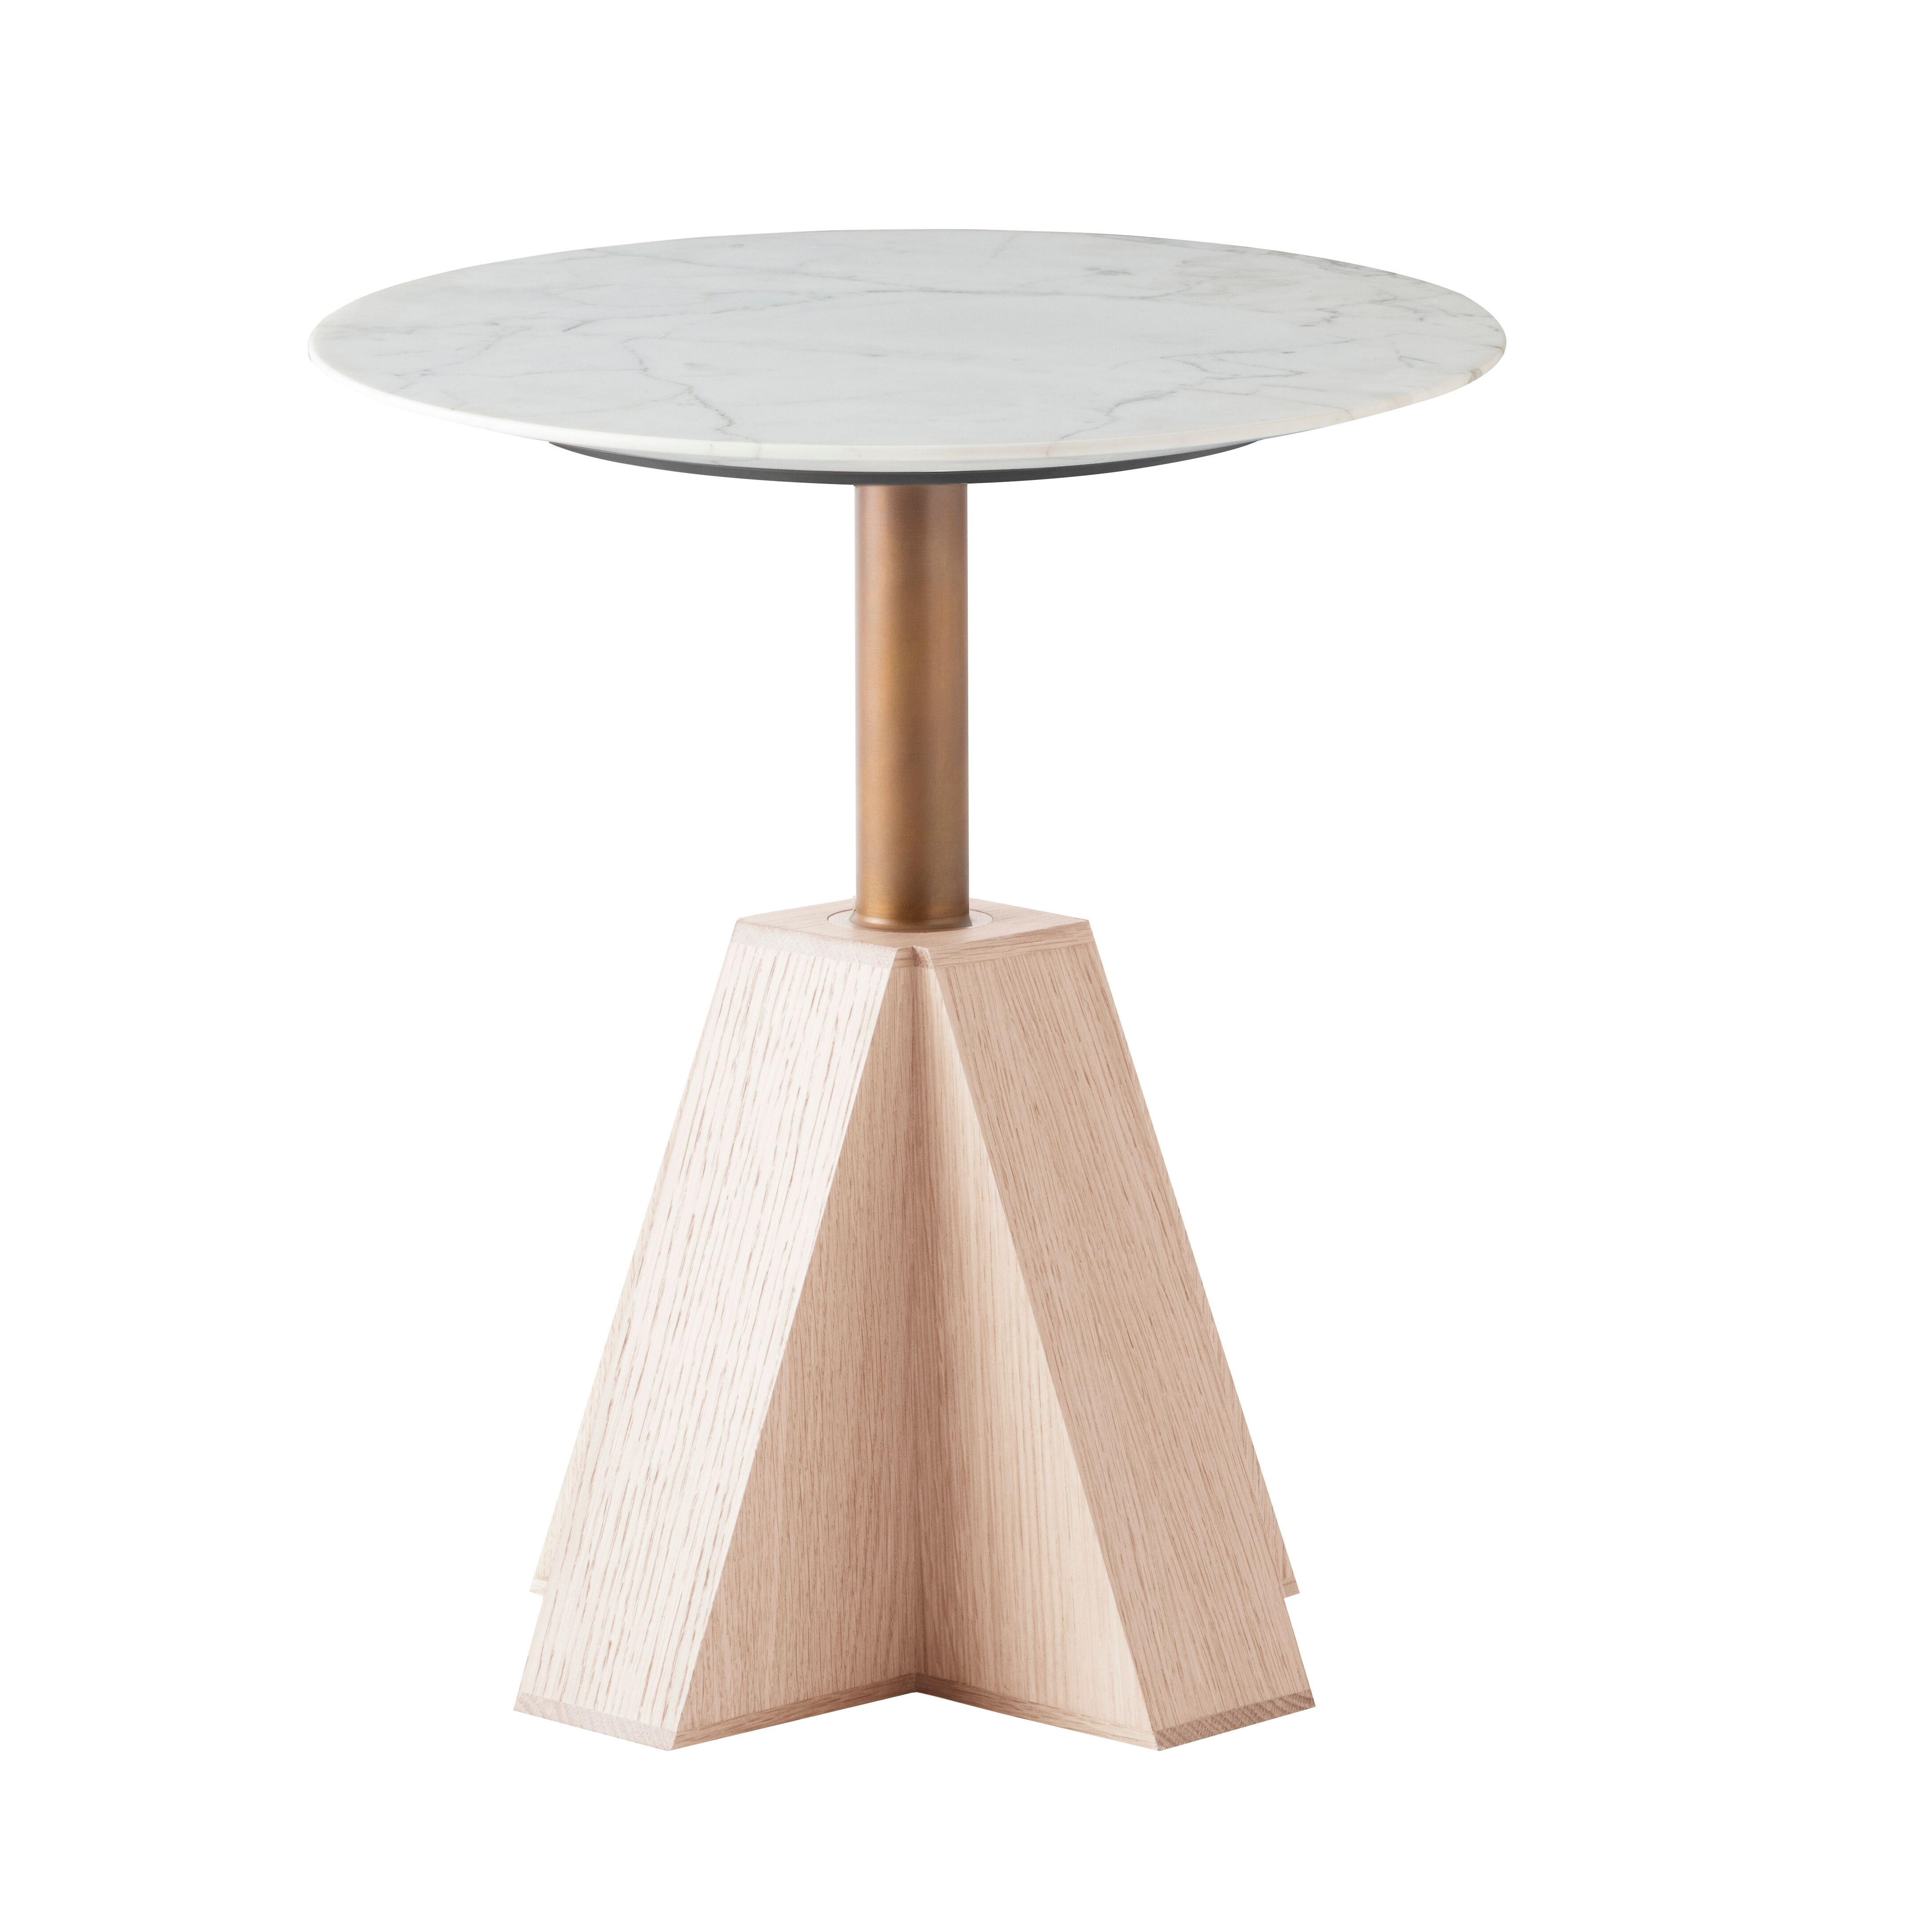 Daniel Boddam's Table Collection